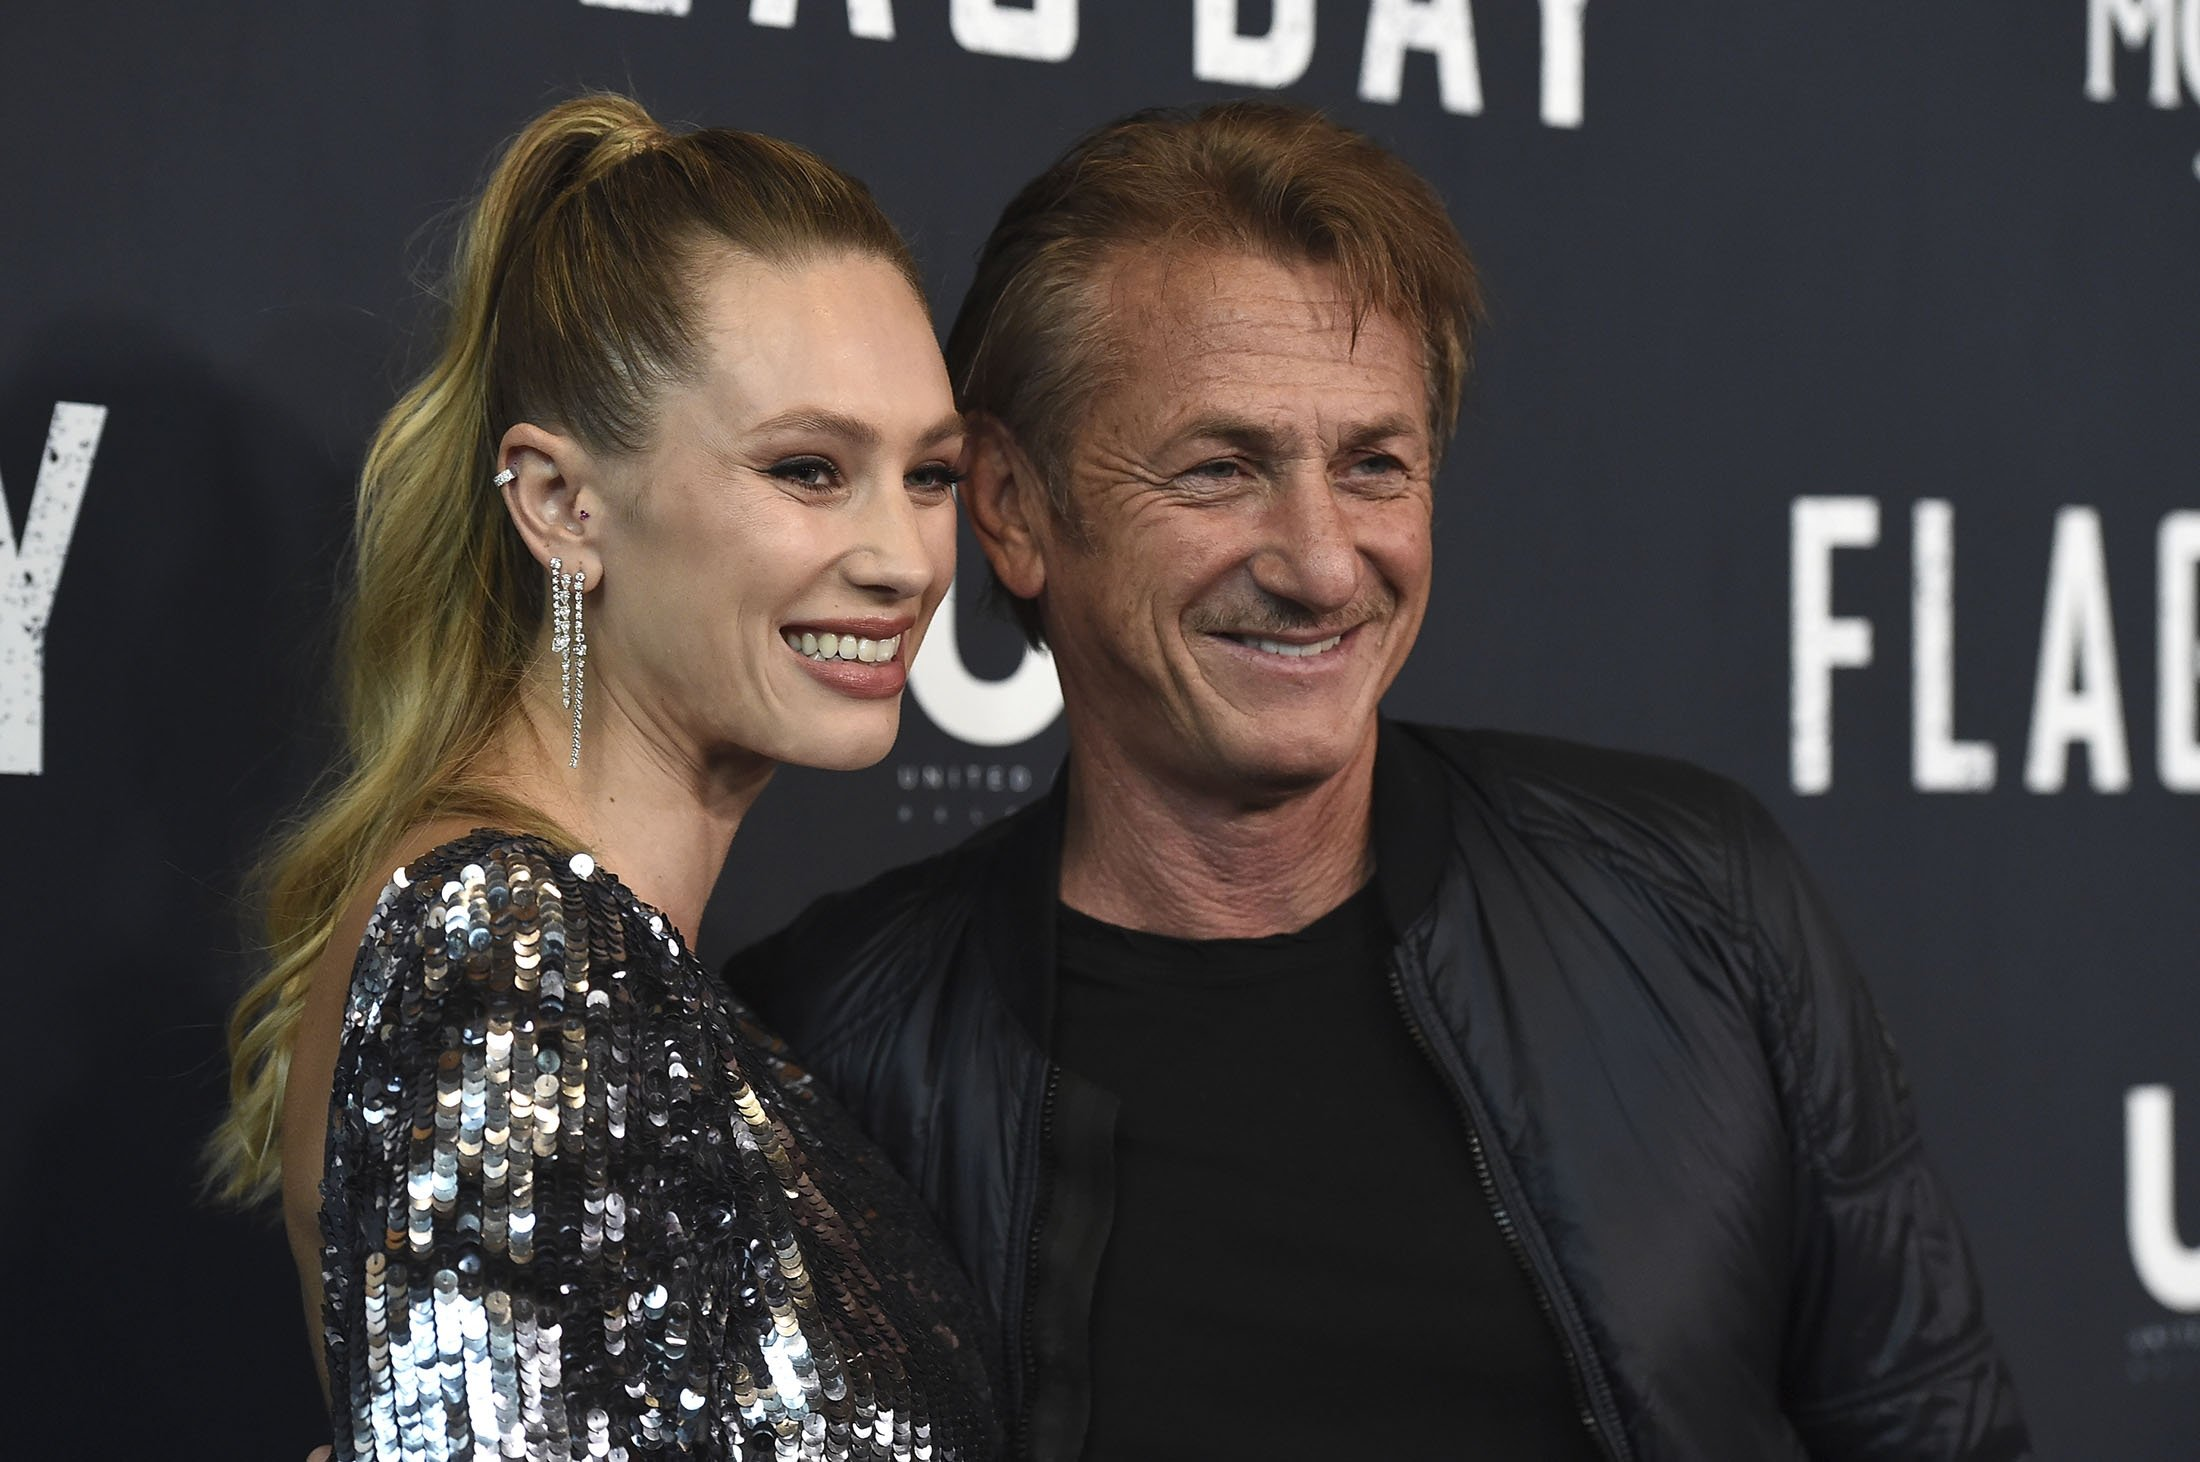 Dylan Penn (L), and her father, Sean Penn, who plays her father in the movie as well, arrive at the Los Angeles premiere of 'Flag Day' at the Directors Guild of America Theater, in Los Angeles, U.S., Aug. 11, 2021. (AP Photo)